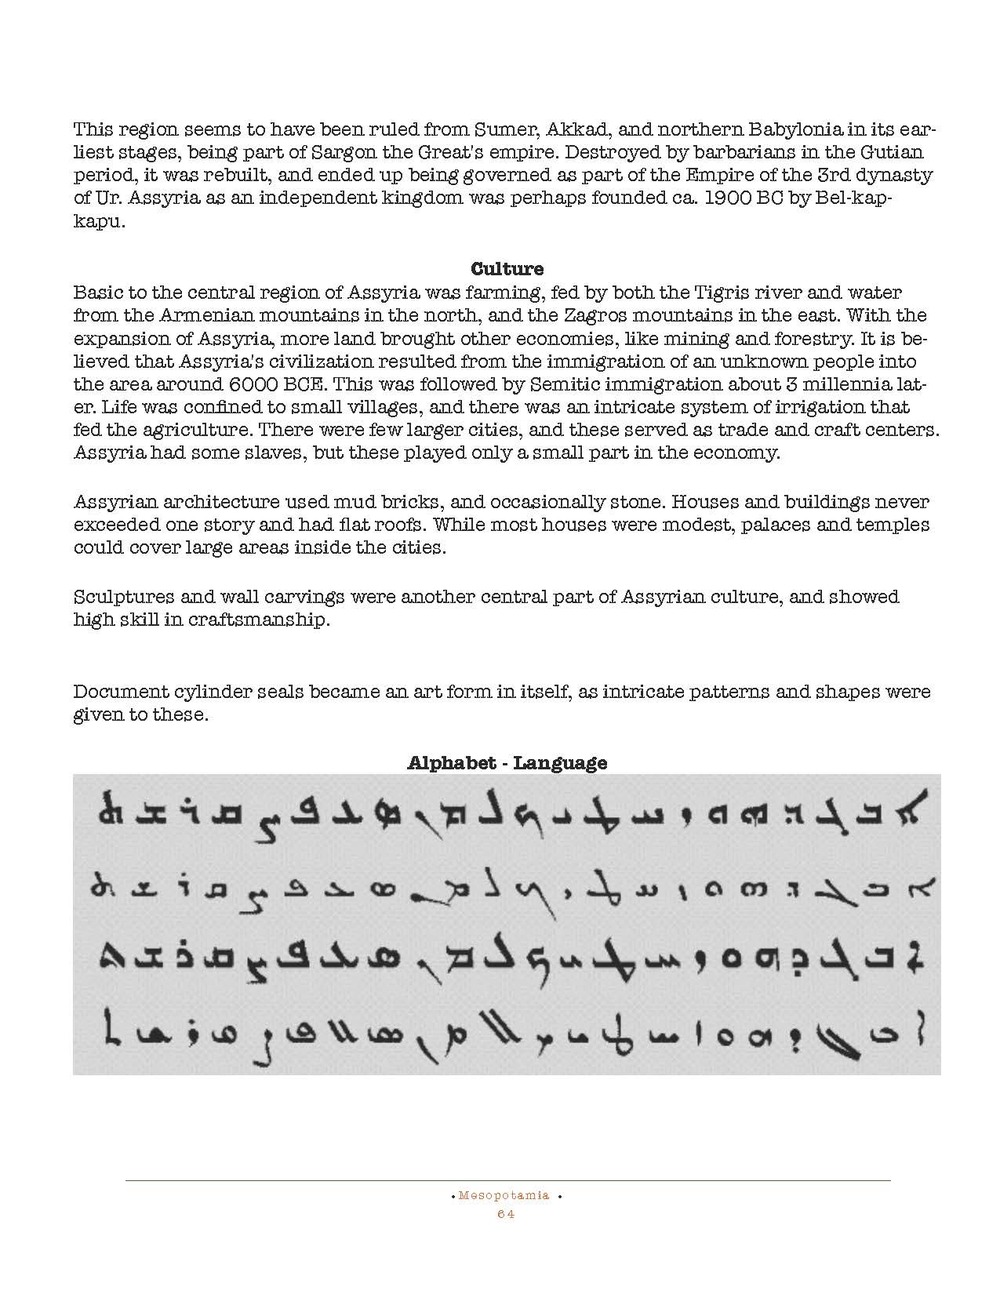 HOCE- Fertile Crescent Notes_Page_064.jpg